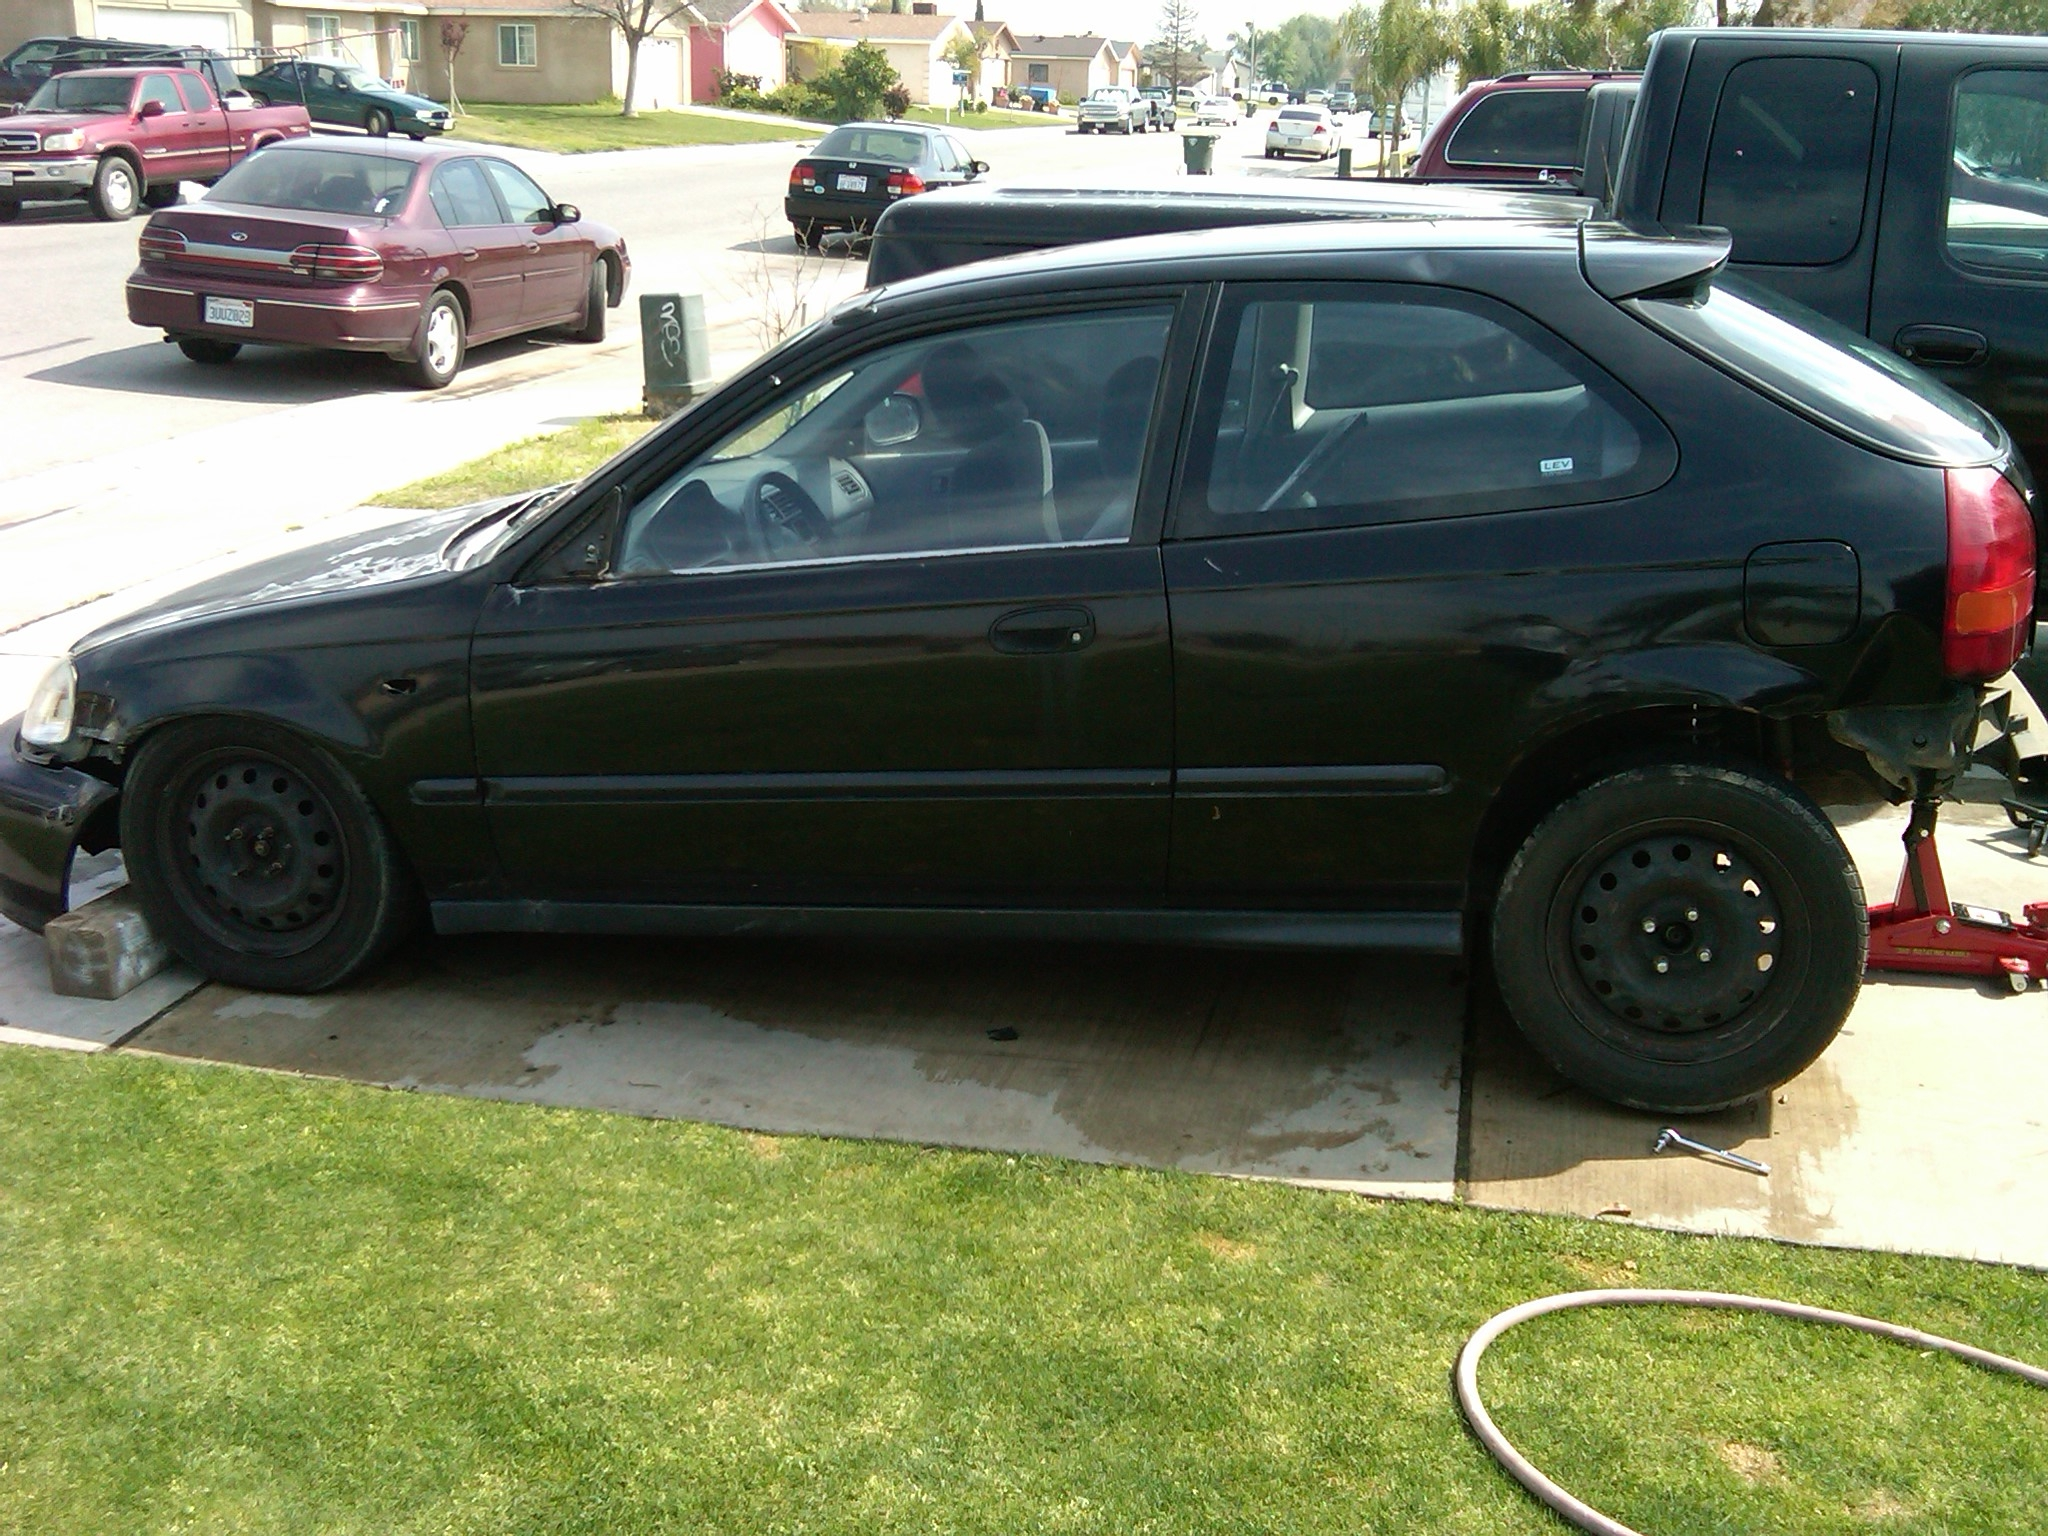 ek9 39 s 1998 honda civic dx hatchback 2d in bakersfield ca. Black Bedroom Furniture Sets. Home Design Ideas